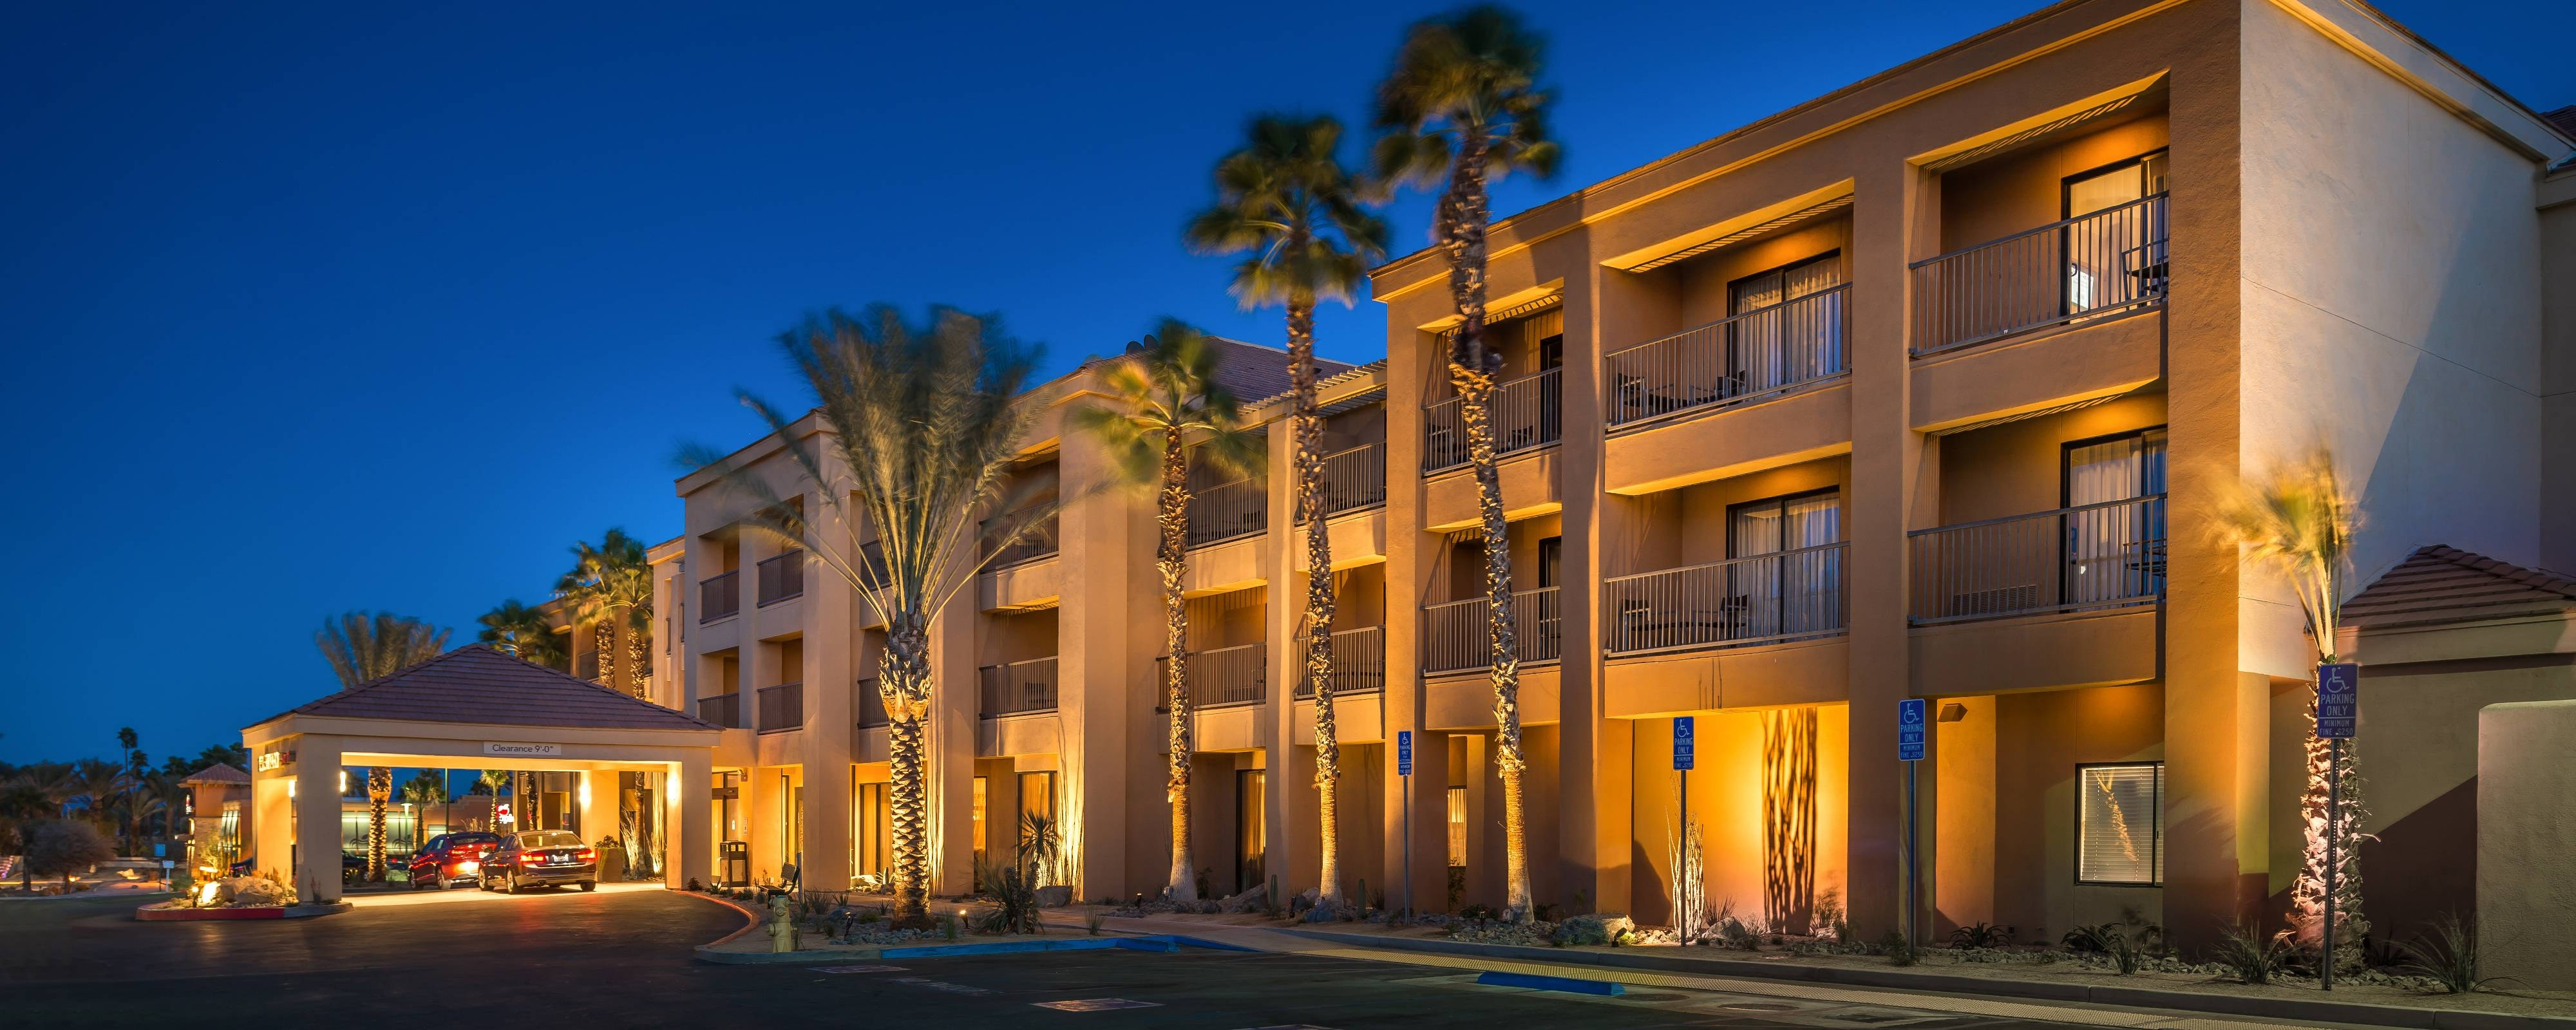 Palm Desert CA Hotels | Courtyard Palm Desert